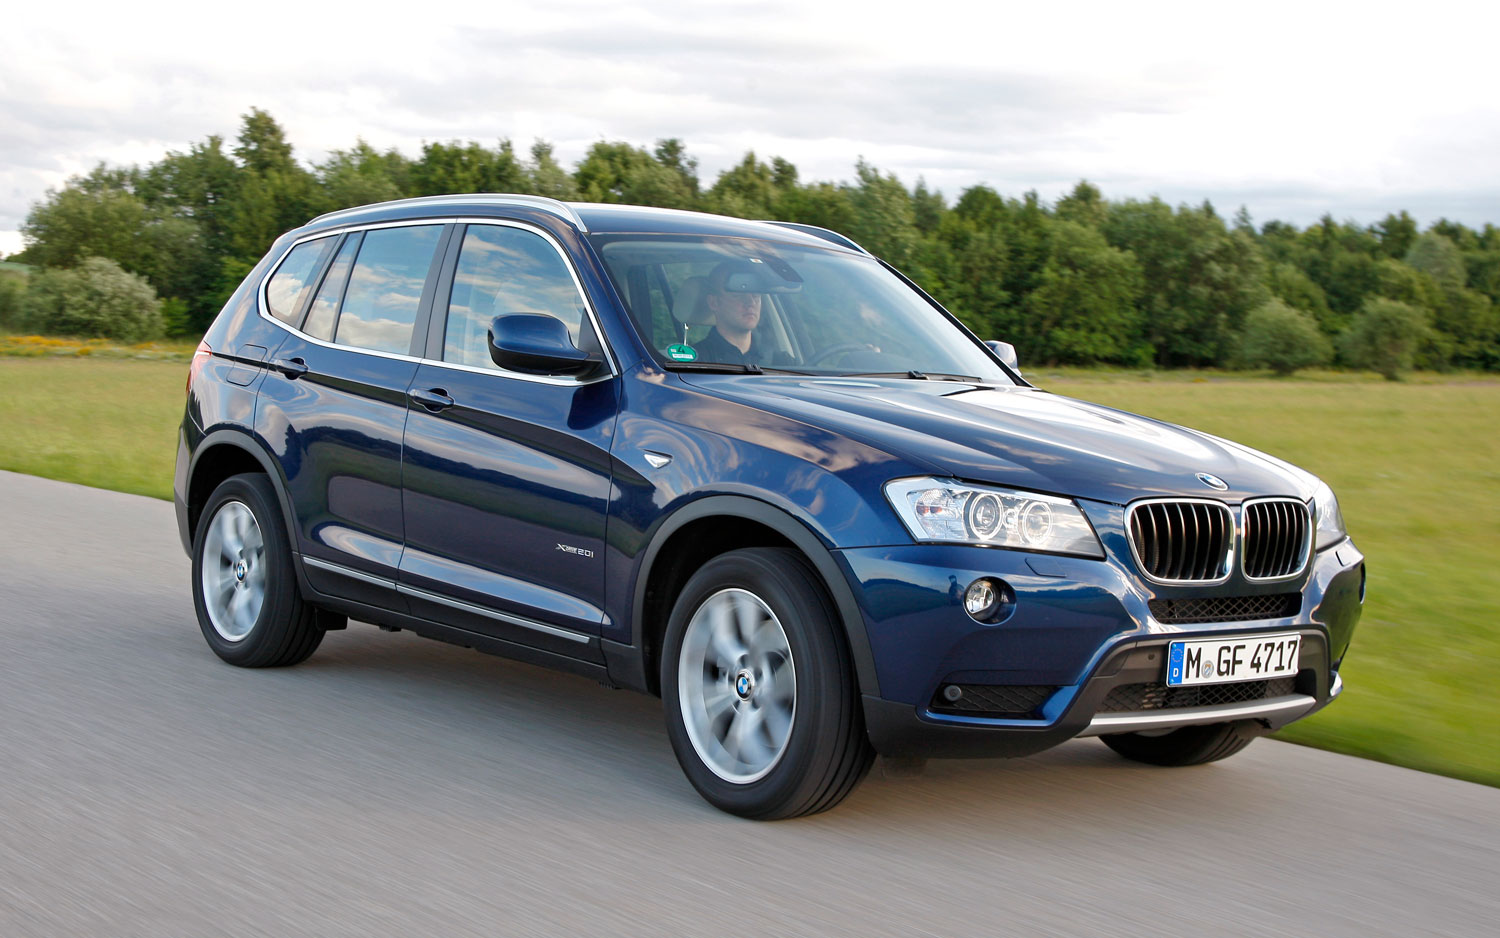 2012 BMW X3 Front Three Quarter View In Motion 21